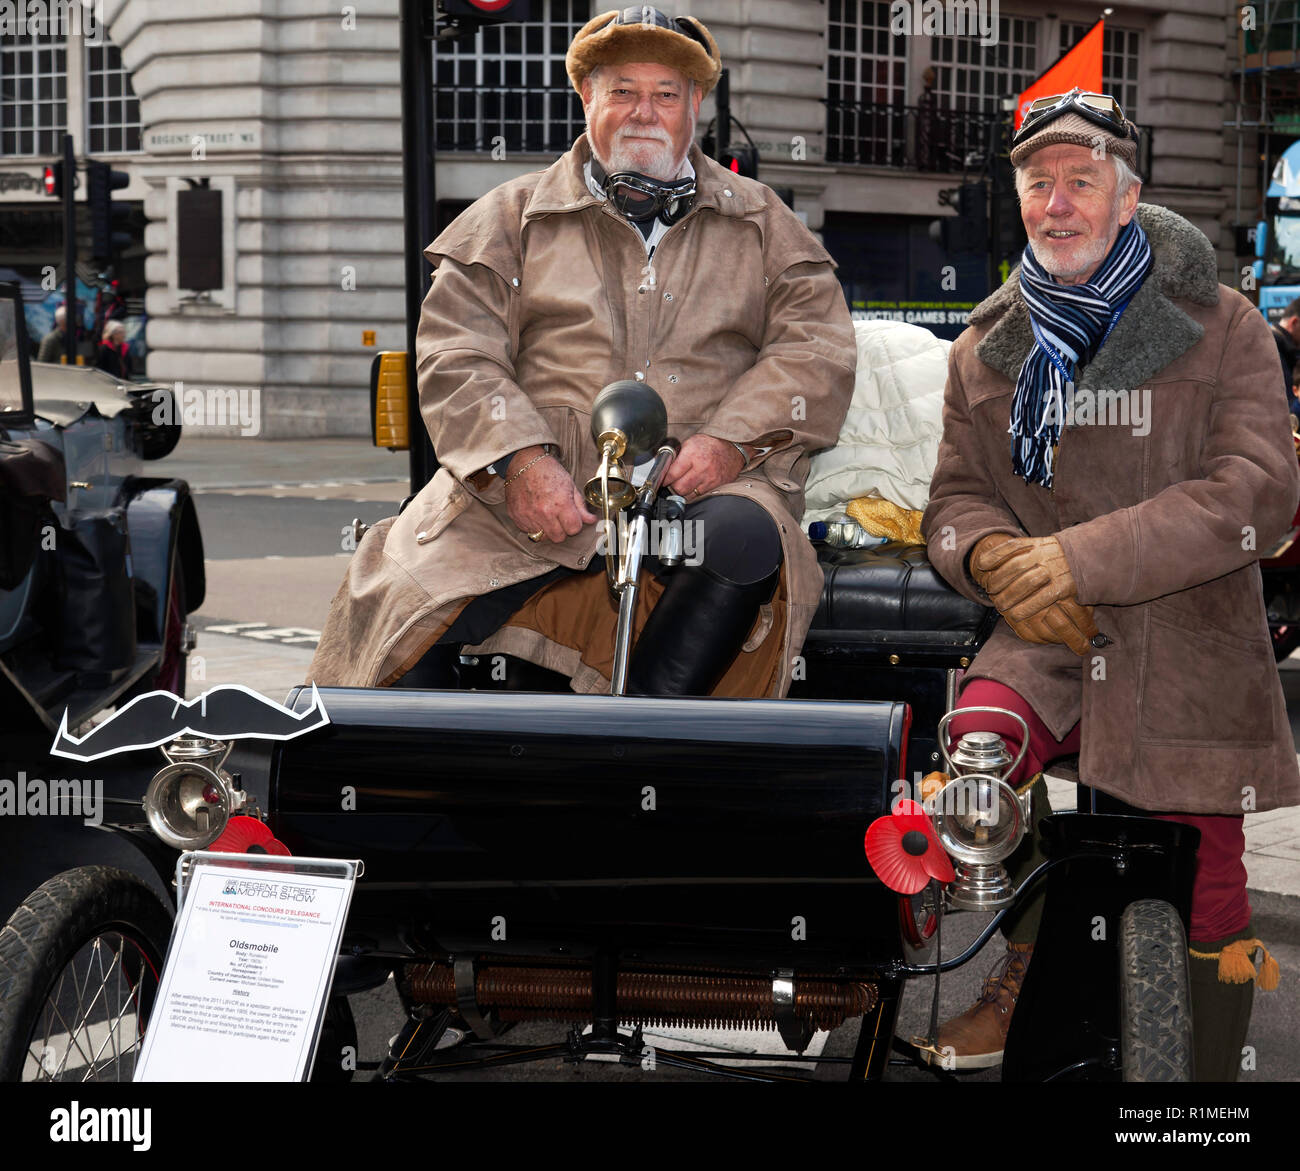 Dr Seiderman  in his 1903 Oldsmobile Curved-dash runabout, participating in the veteran car Concourse d'Elegance at the Regents Street Motor Show 2018 Stock Photo